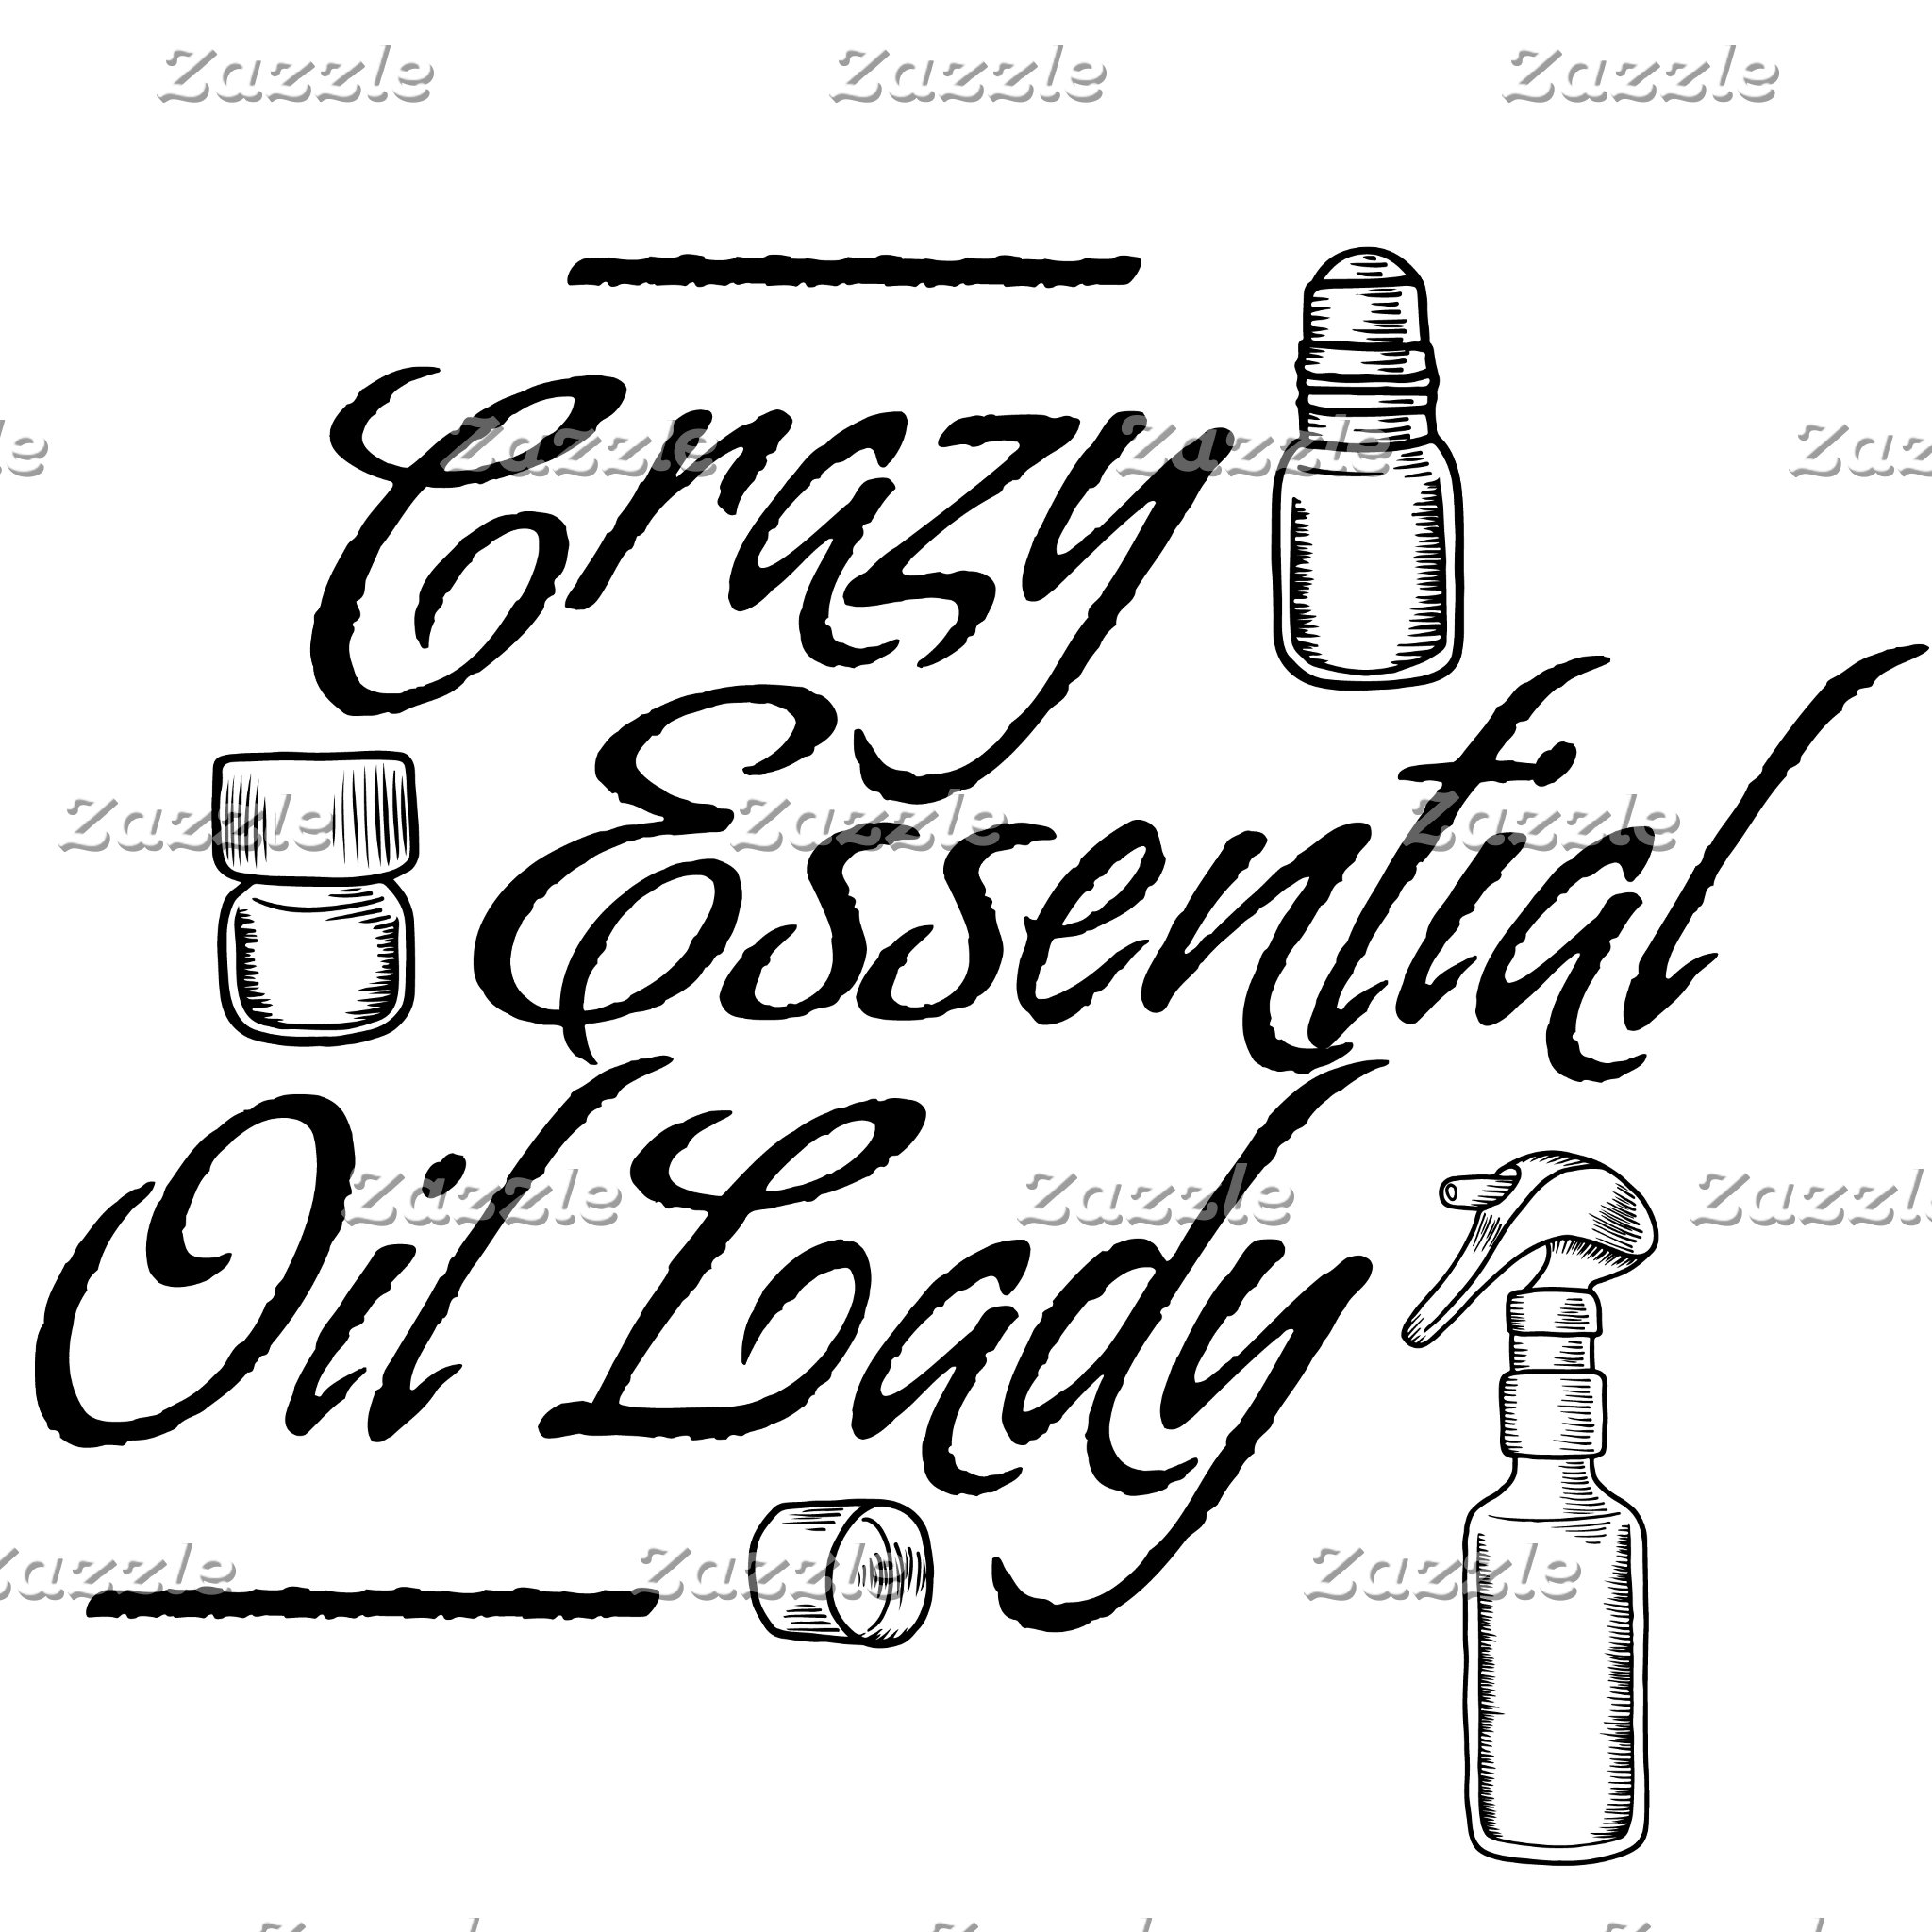 Crazy Essential Oil Lady